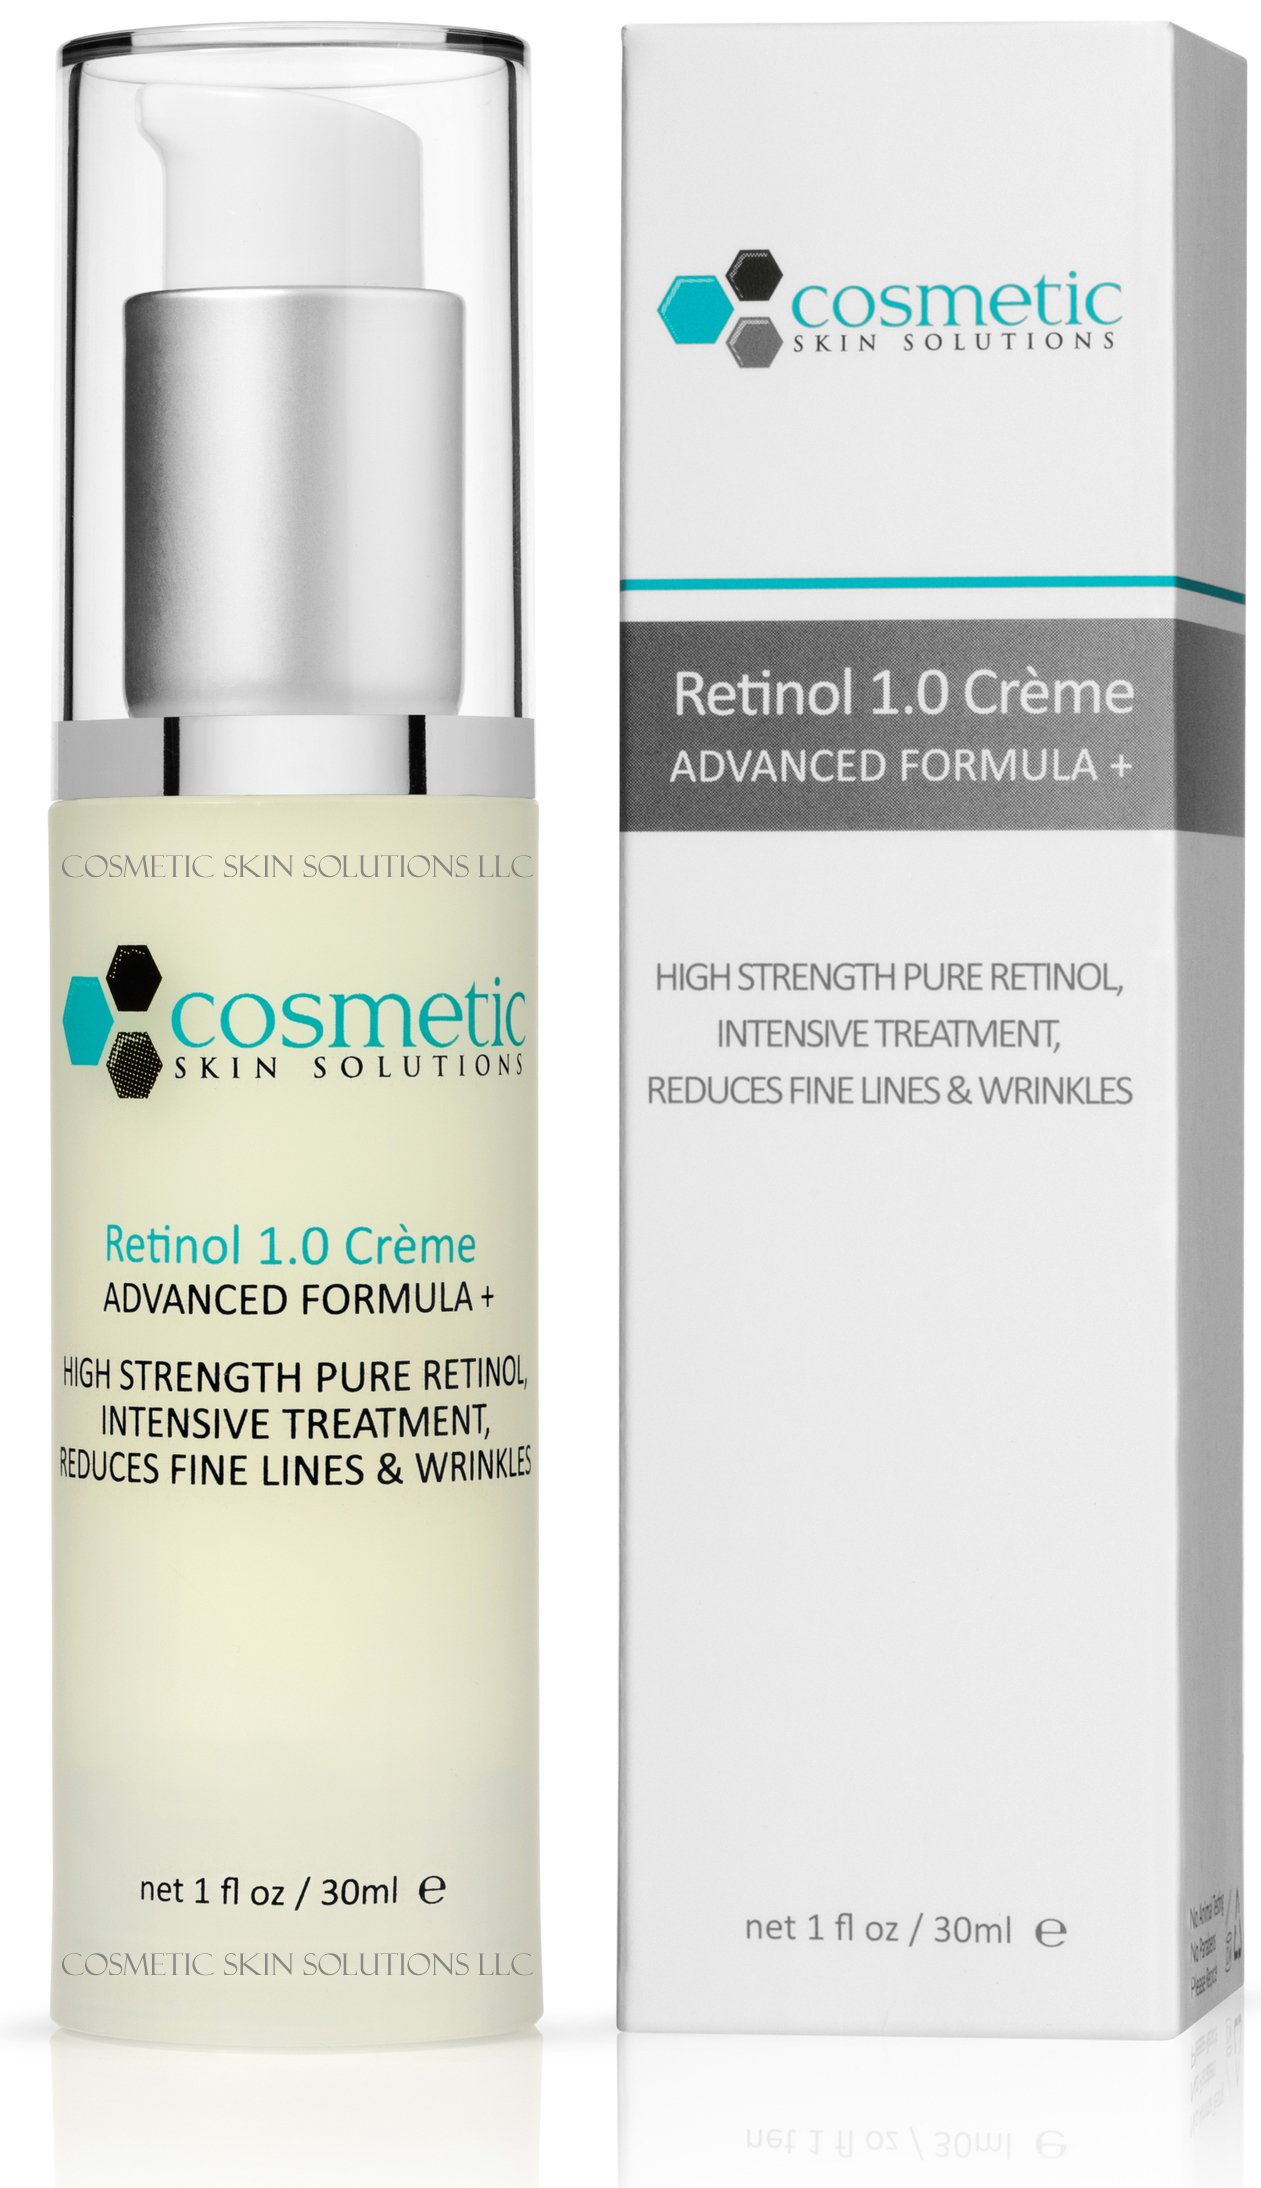 Best Retinol 1.0% Advanced Formula + 1 oz / 30 ml - 1% Retinol (Vitamin A), 1% Vitamin E. High strength, softens wrinkles & lines.